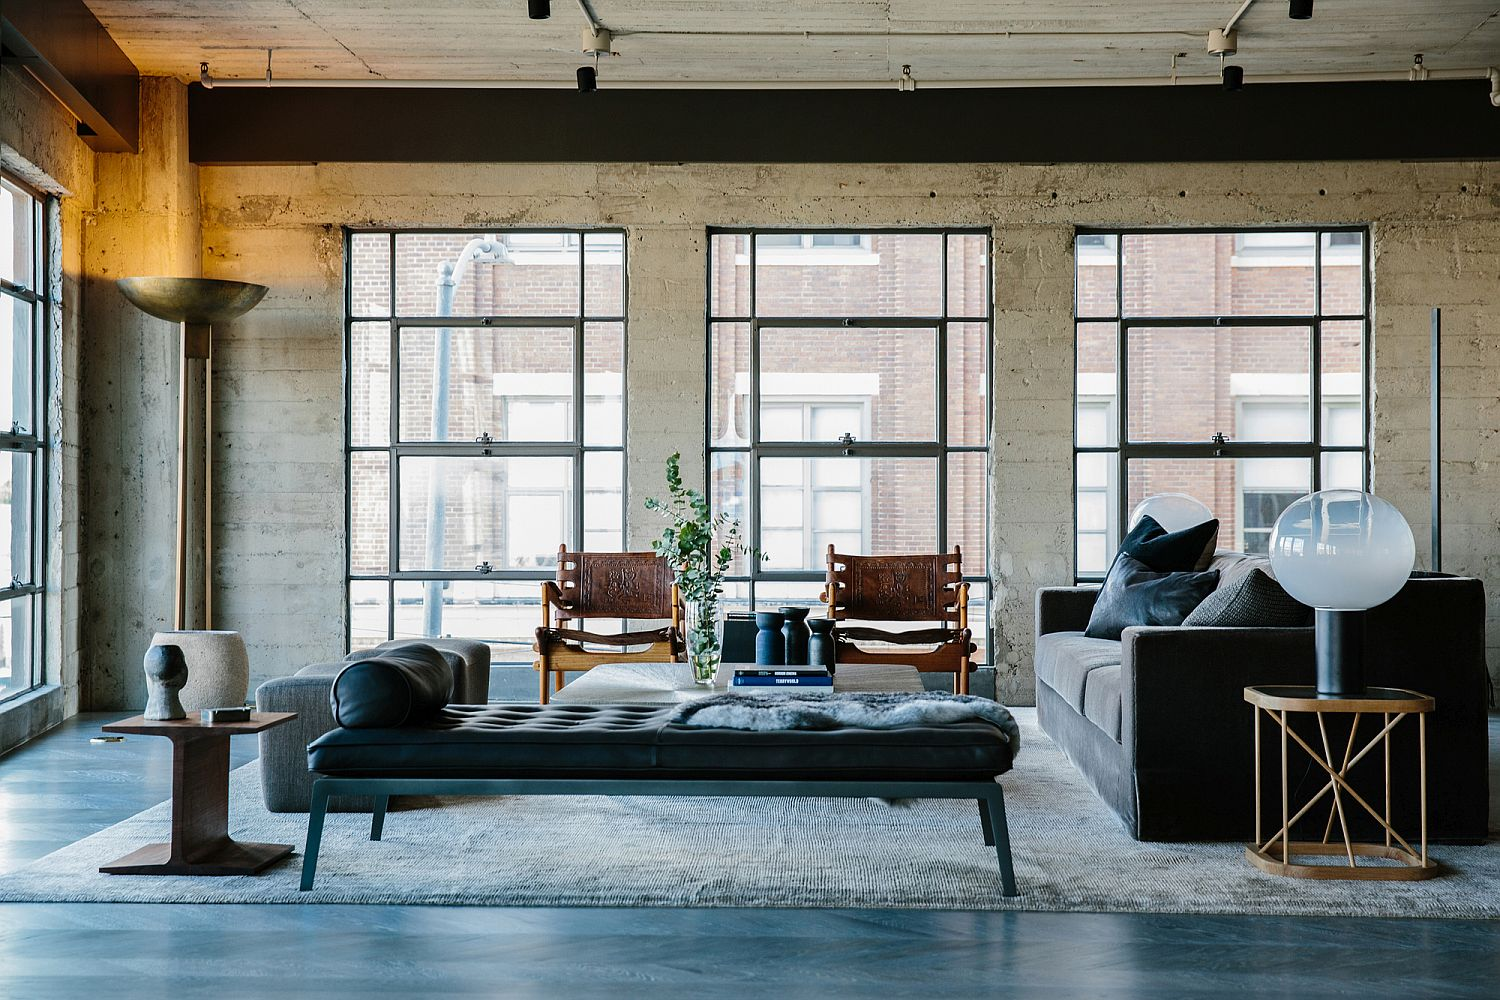 Exposed concrete walls and a polished floor blend in beautifully with the industrial vibe of the home